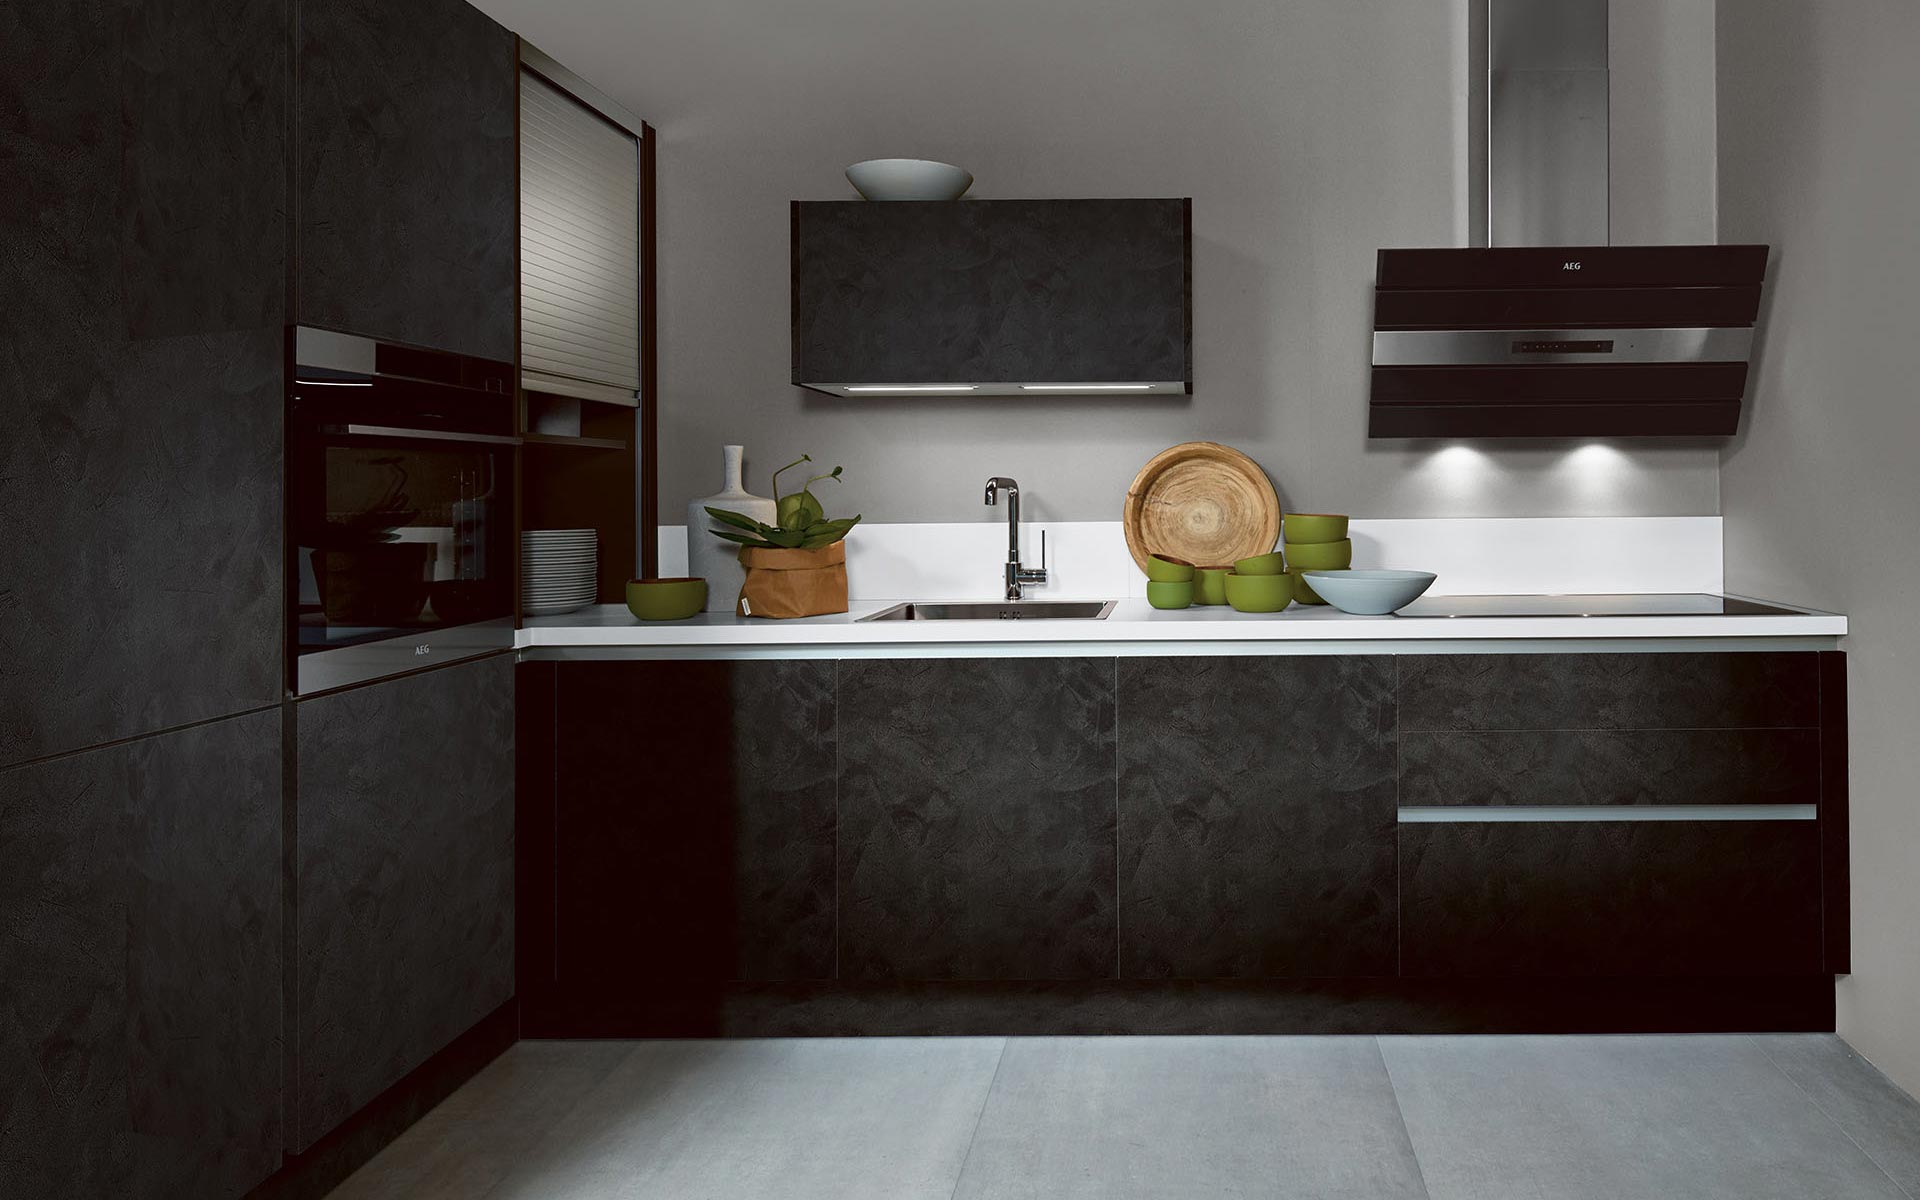 Toronto: Kitchens from Germany, Europe. Cemento Black